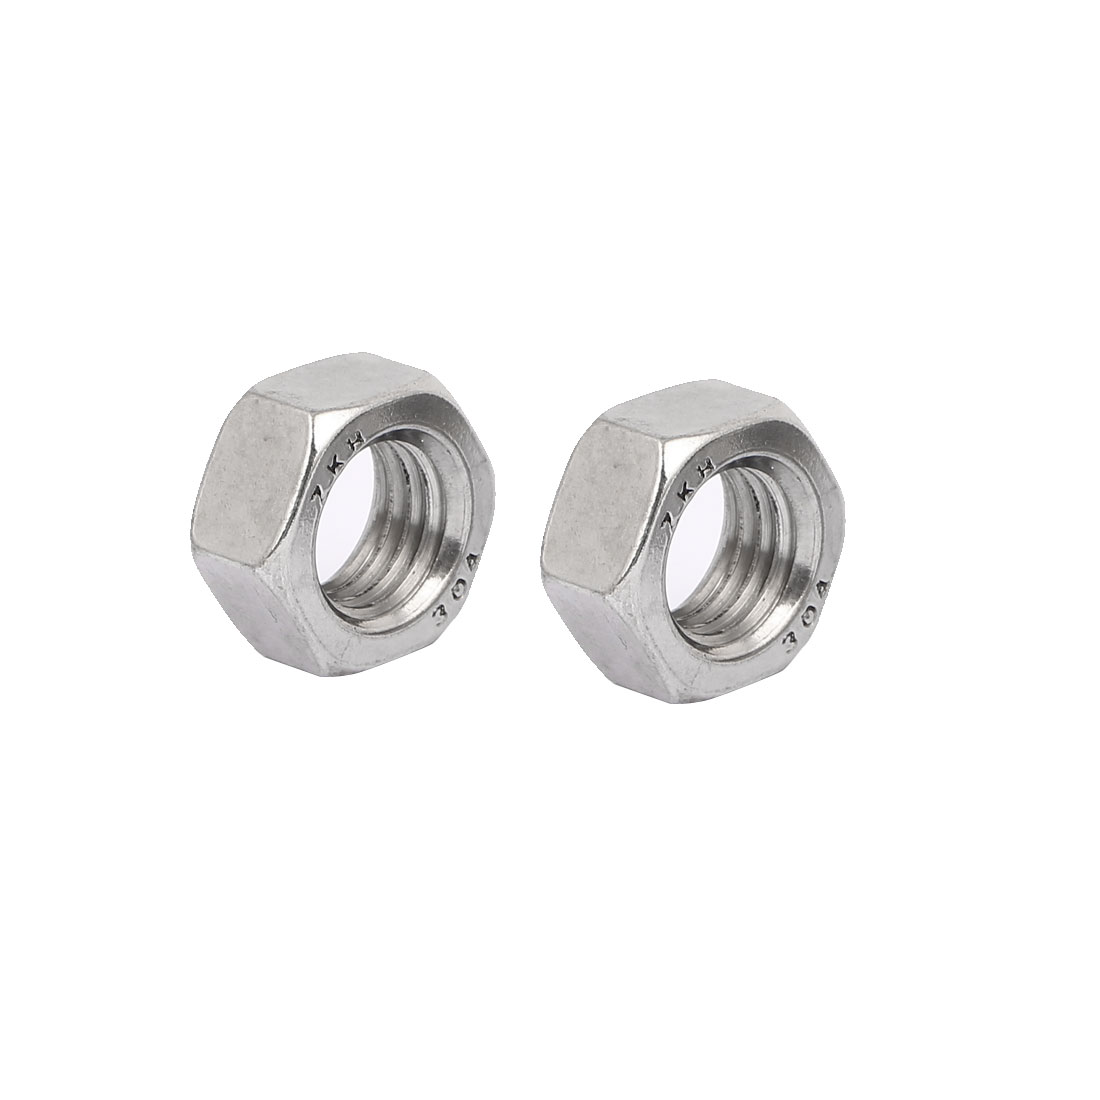 304 Stainless Steel Finished Metric Hex Nut Silver Tone M18 2pcs